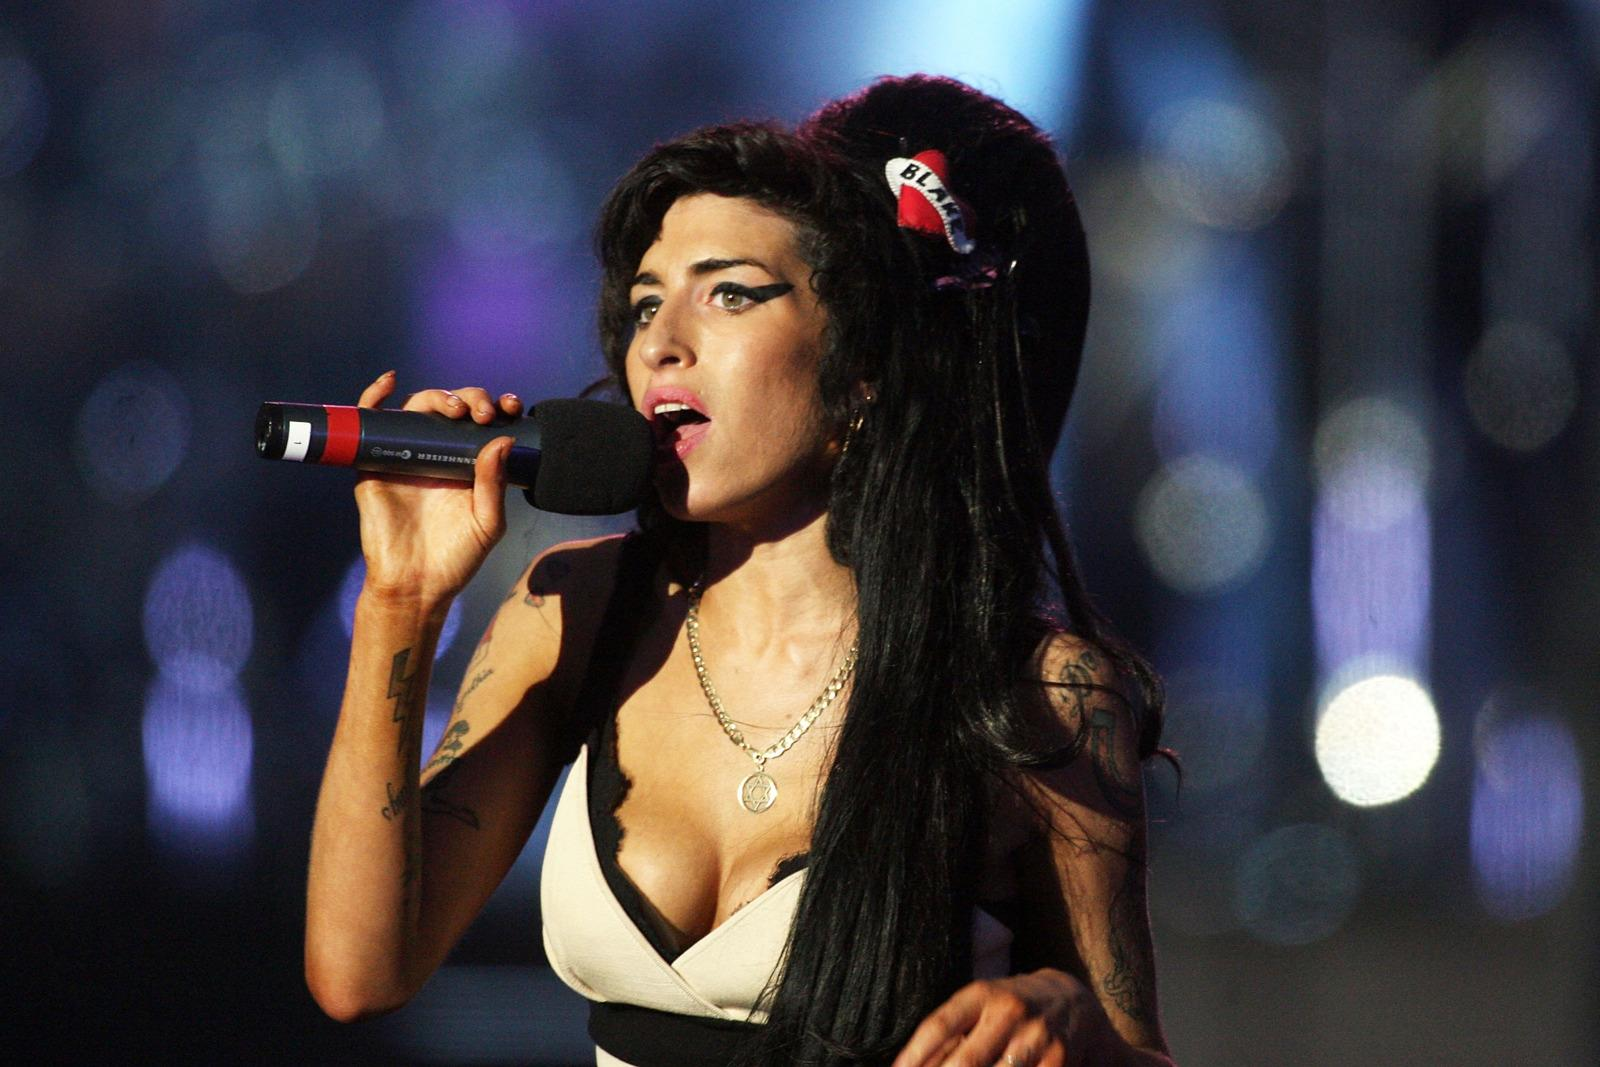 Amy Winehouse Leaked Photos amy winehouse biopic in the works from lily allen's producer